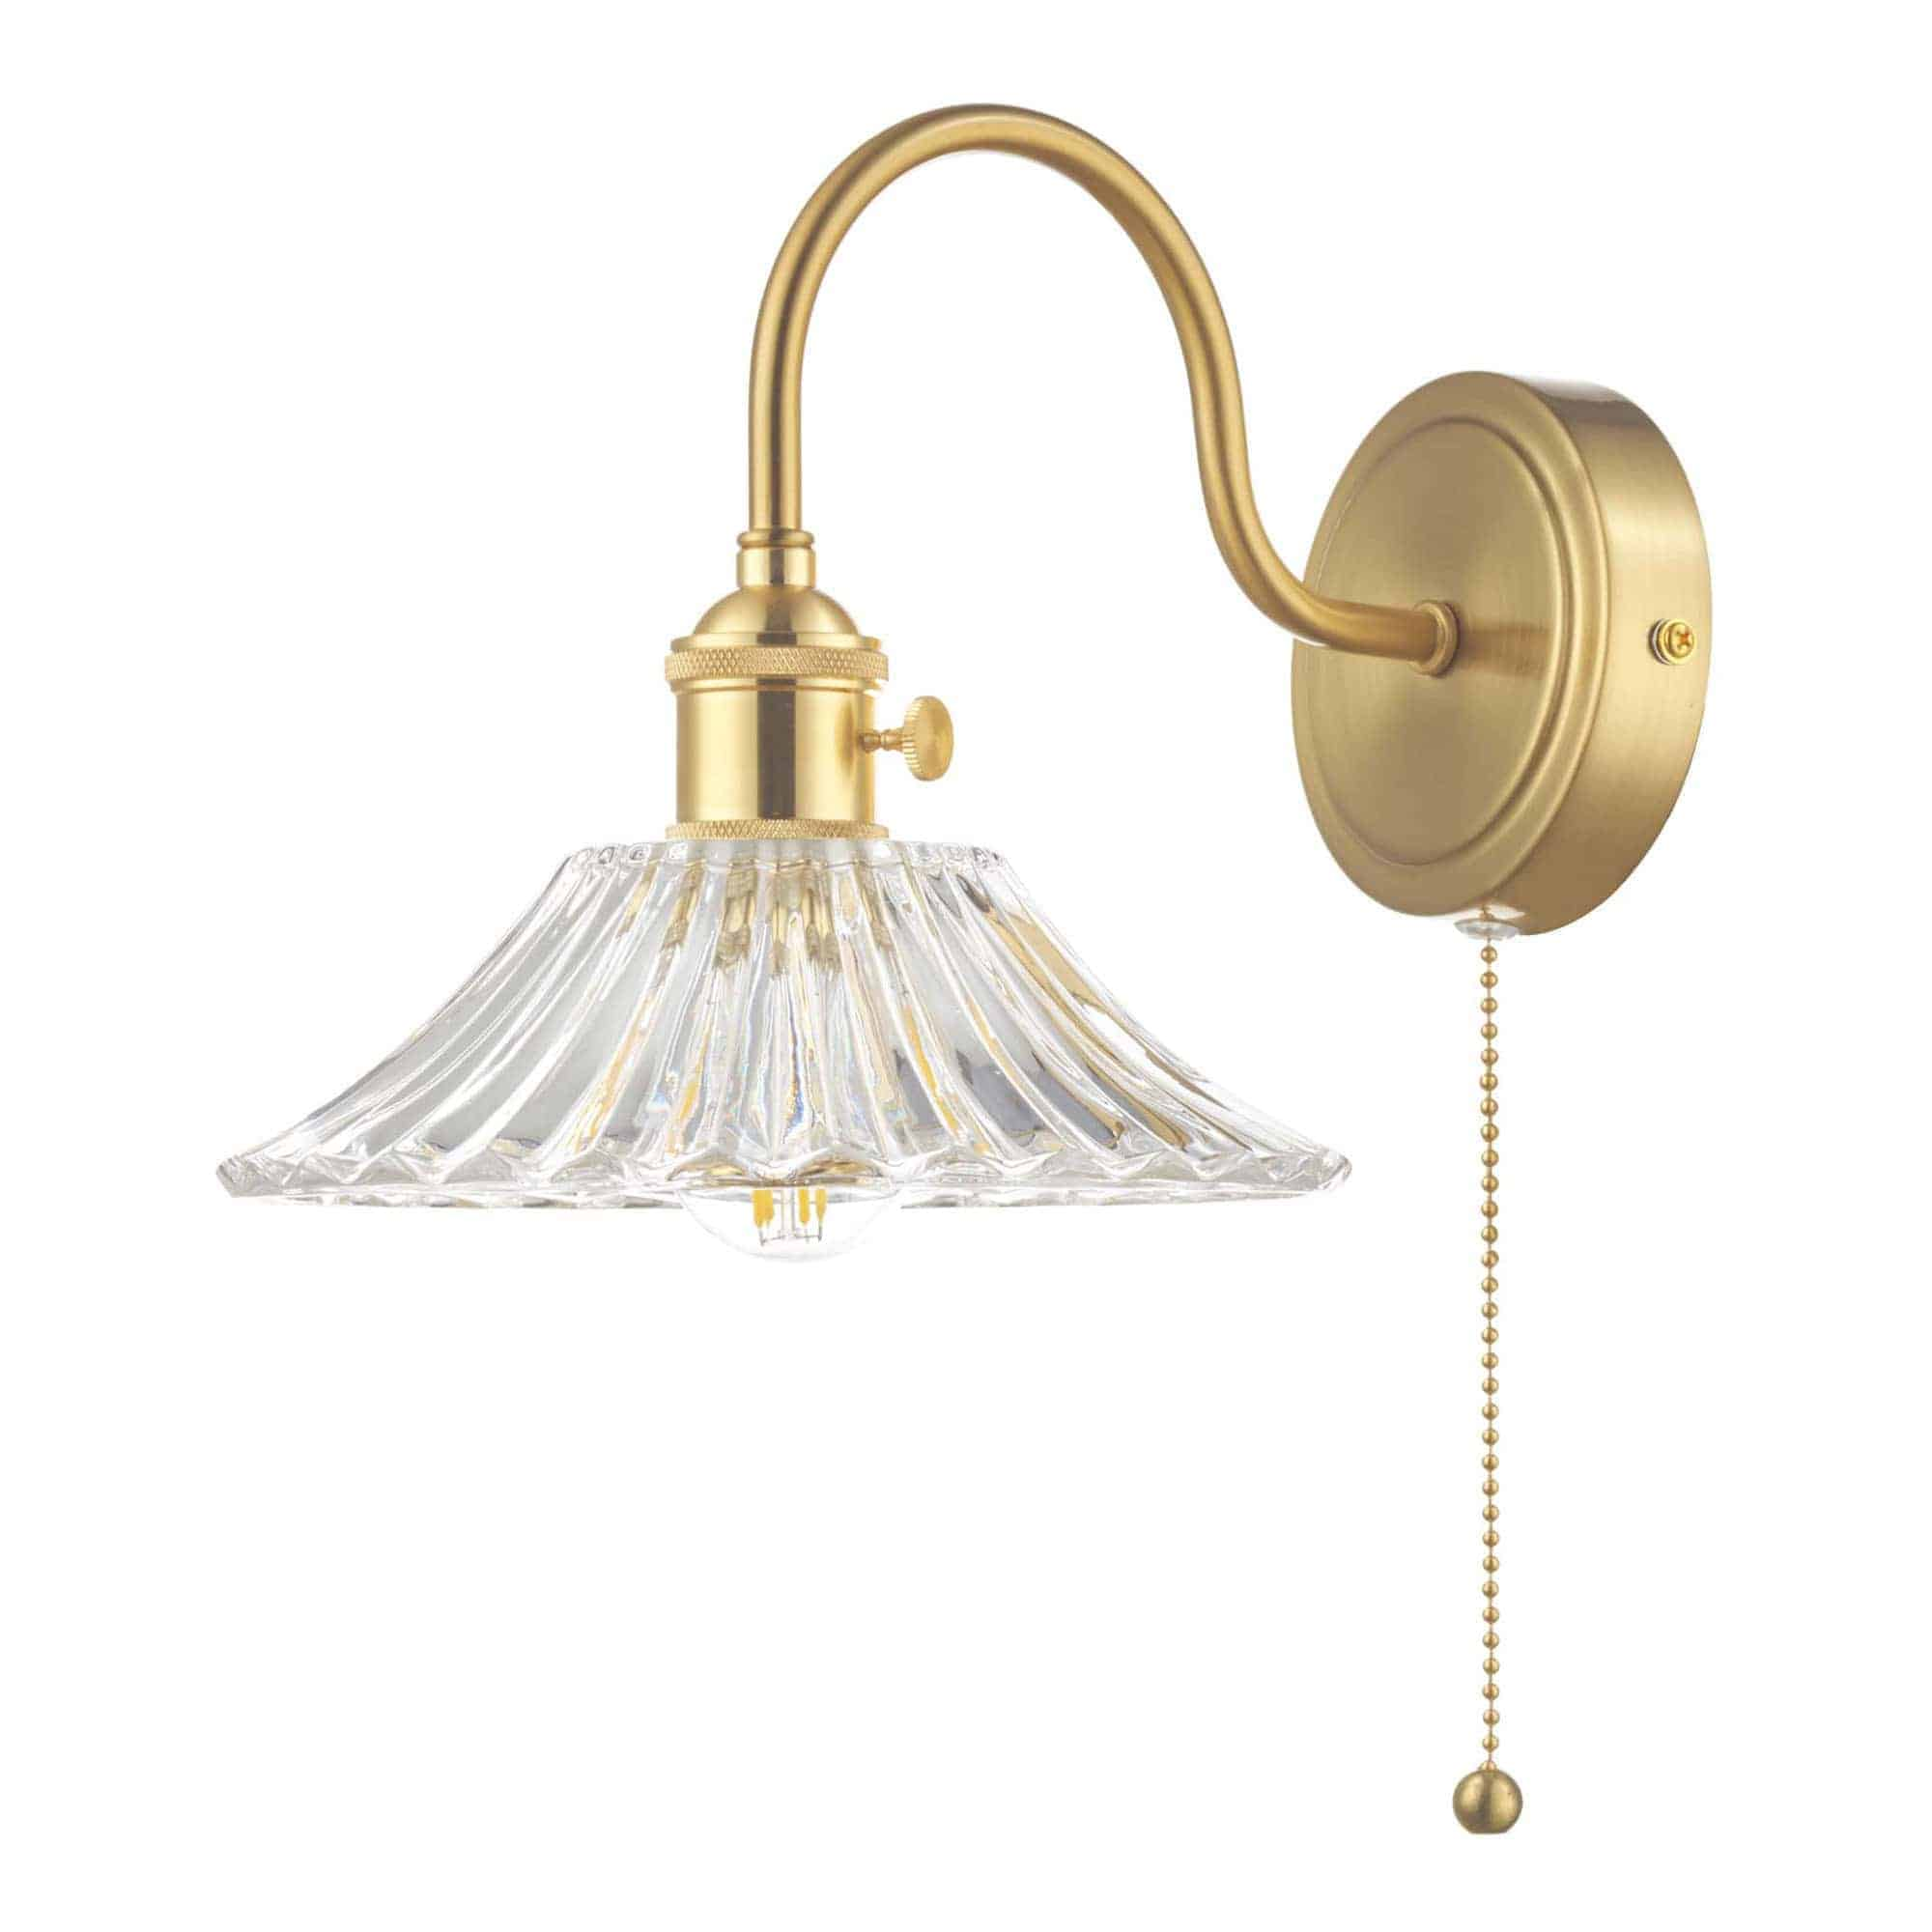 Dar HAD0740-04 Hadano 1 Light Wall Light Brass With Flared Glass Shade